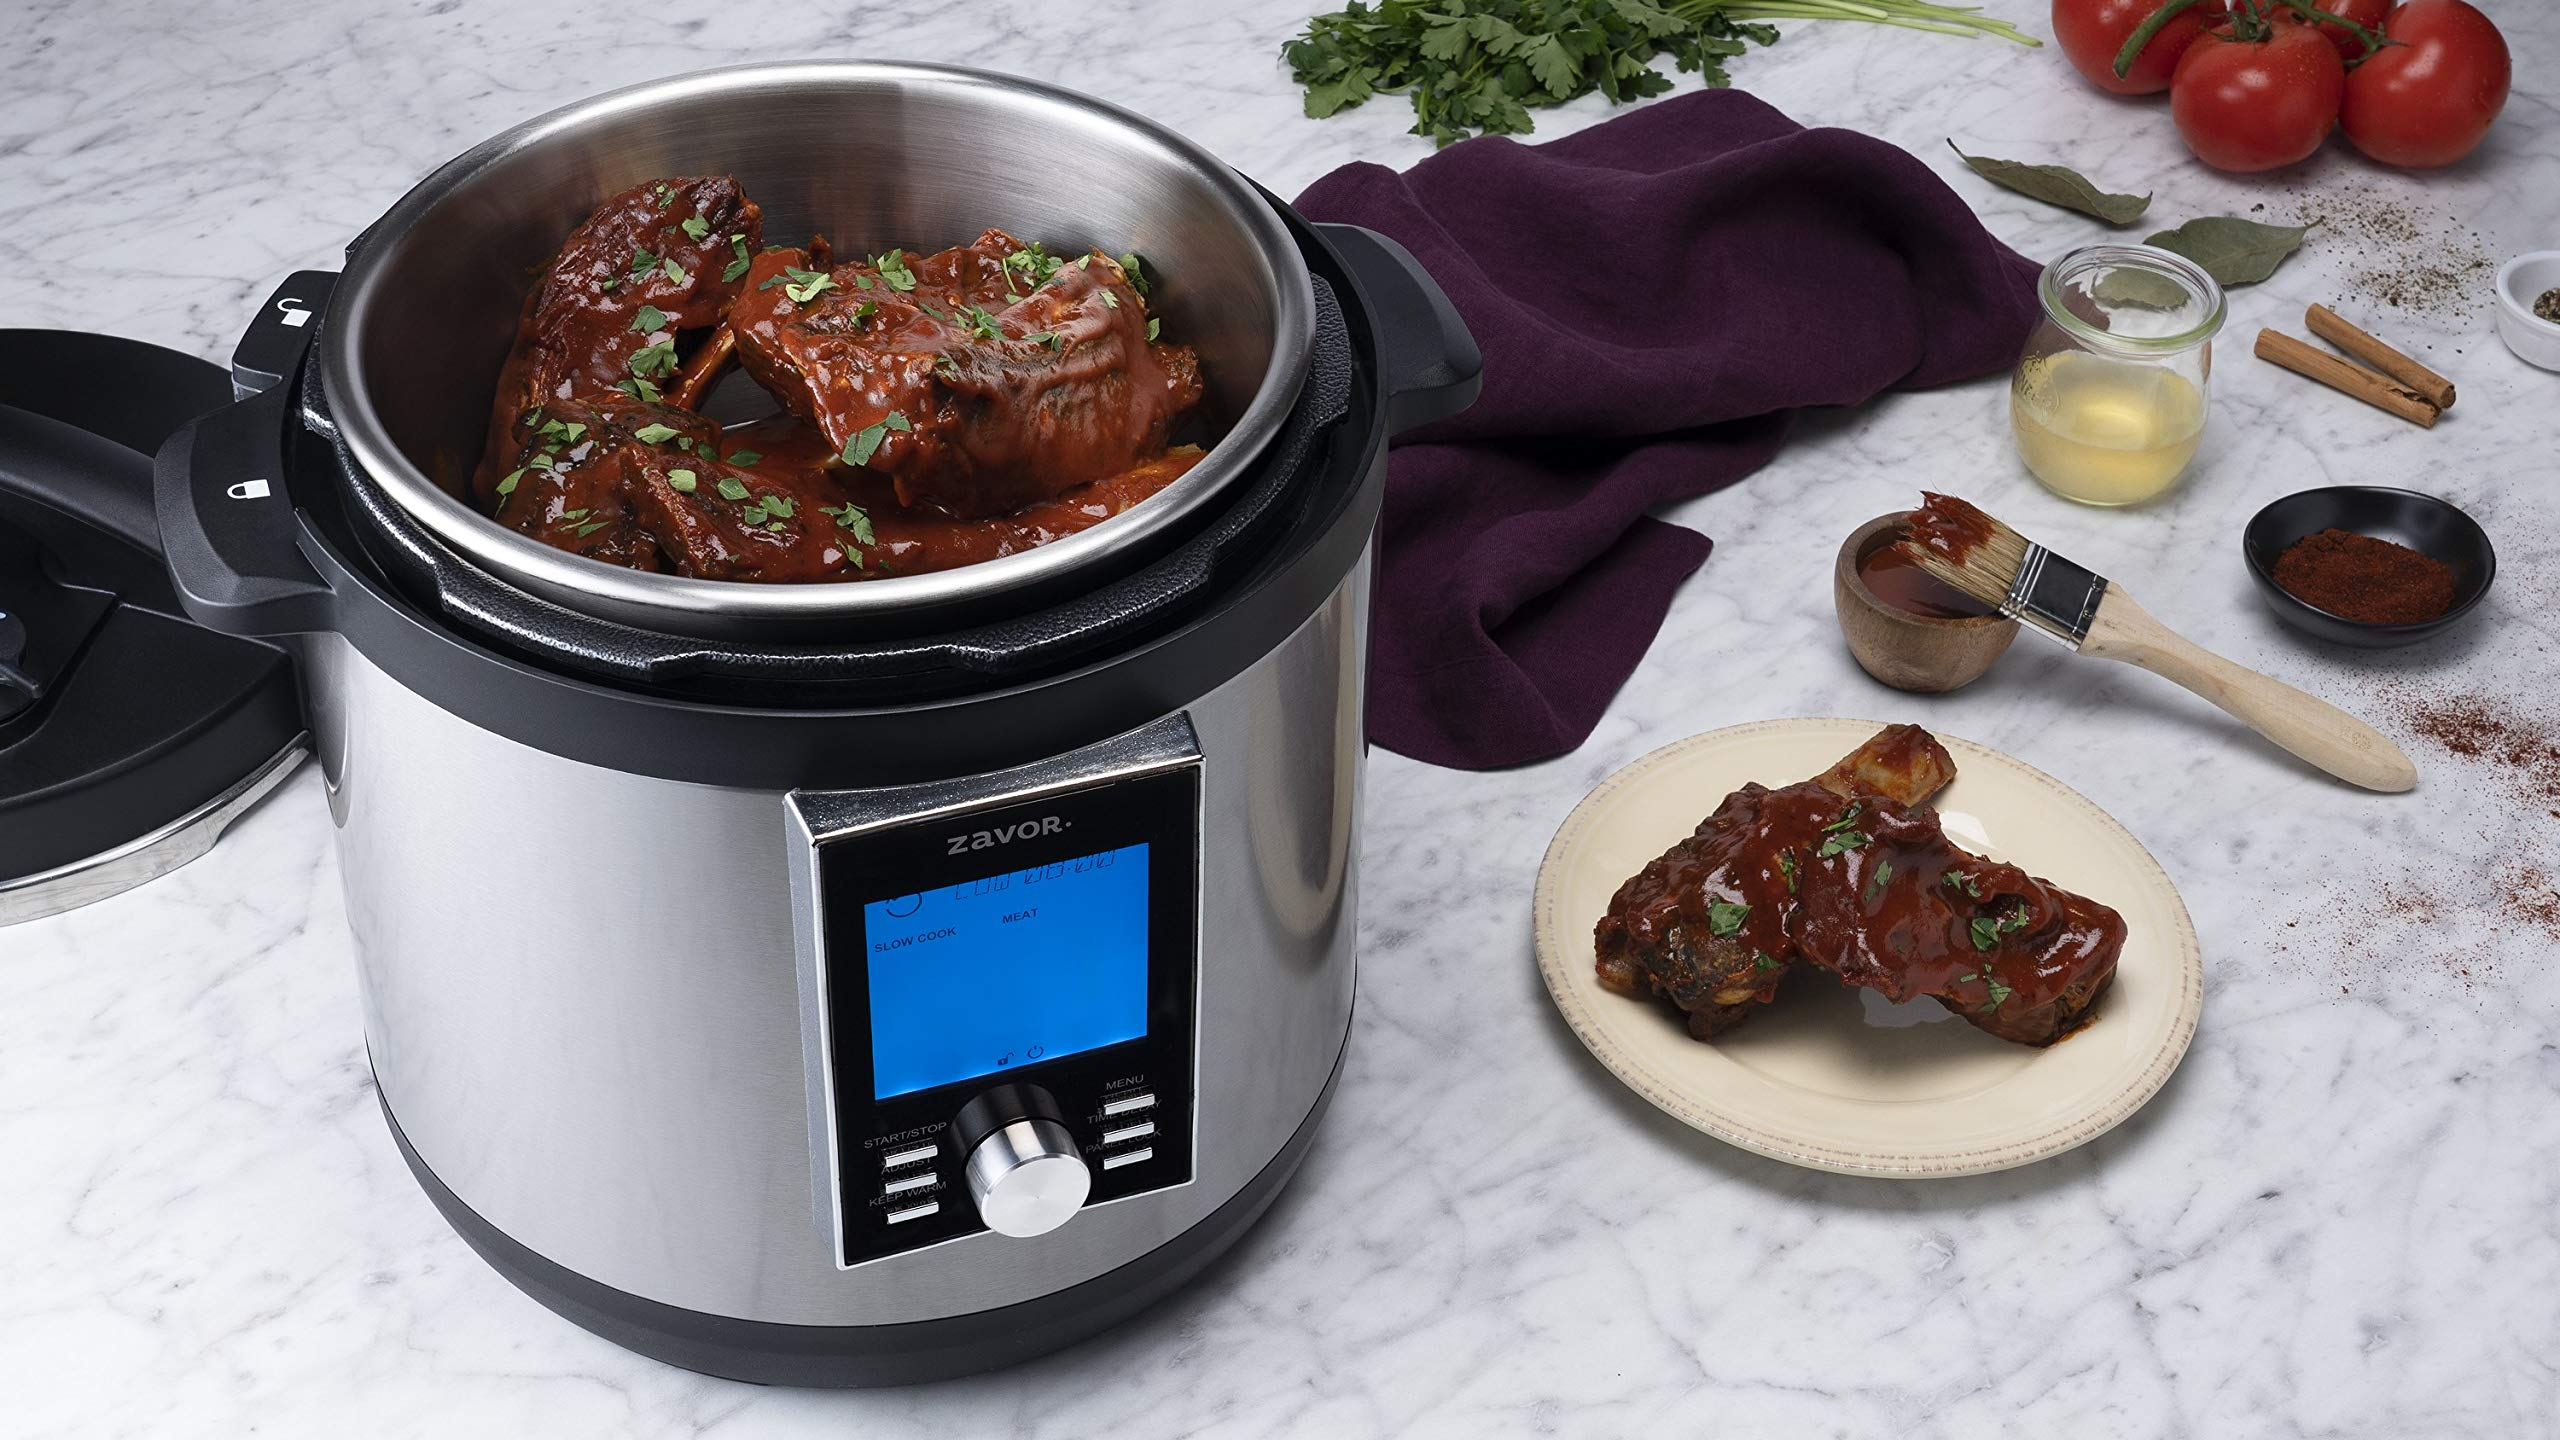 Zavor LUX LCD 8 Quart Programmable Electric Multi-Cooker: Pressure Cooker, Slow Cooker, Rice Cooker, Yogurt Maker, Steamer and more - Stainless Steel (ZSELL03) by ZAVOR (Image #8)